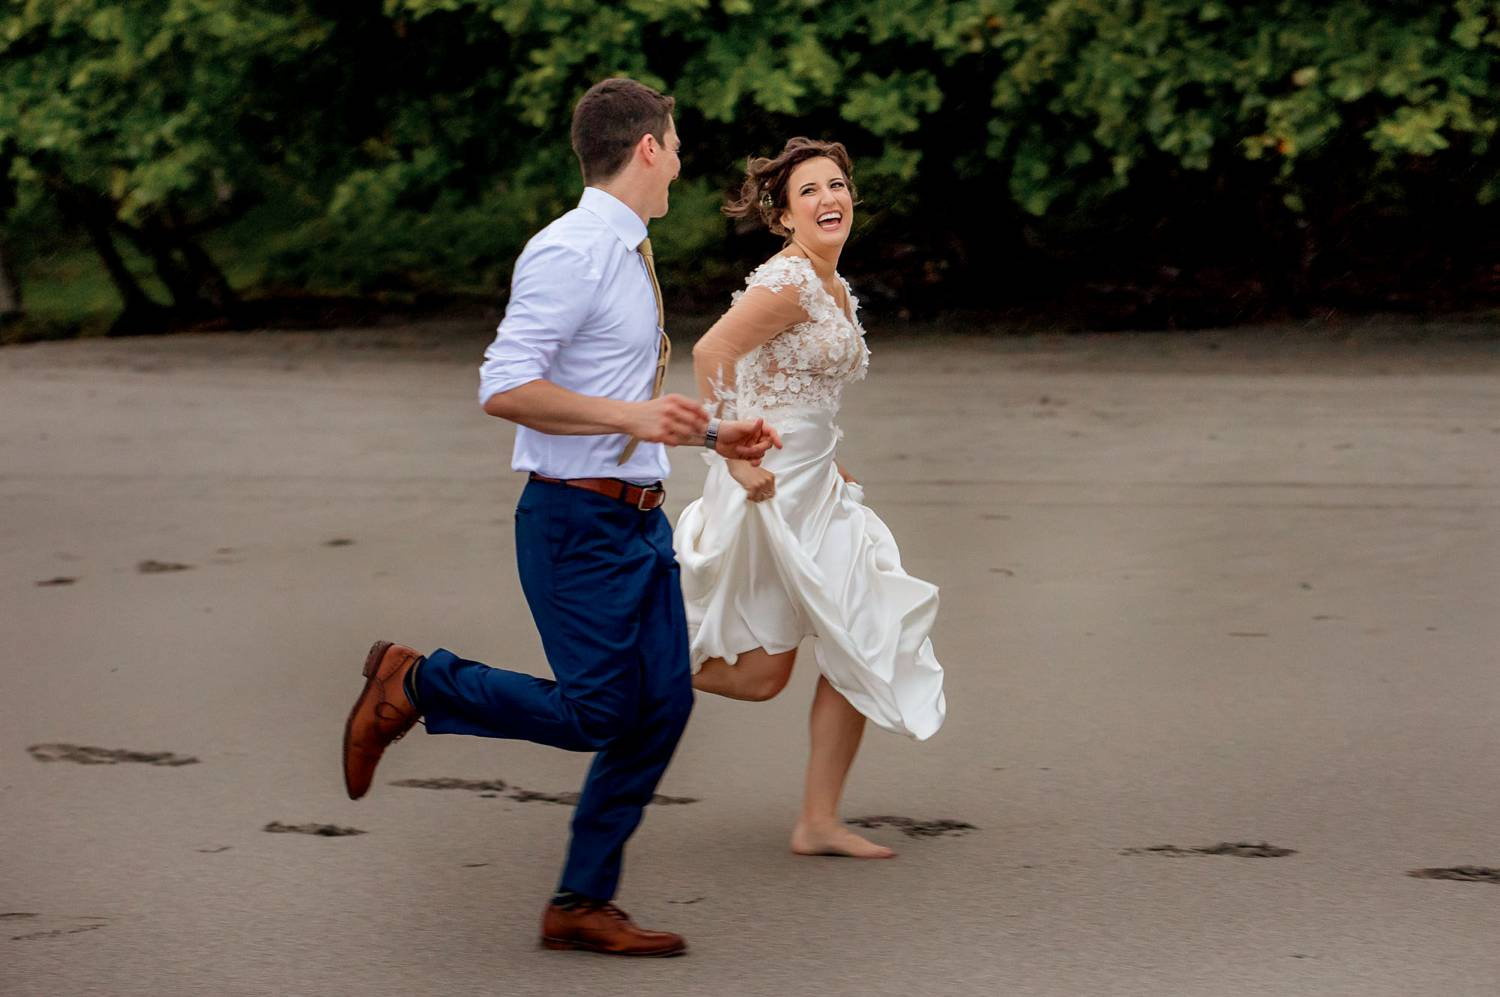 Client Experience: A photo by Kevin Heslin depicts a bride and groom running along a beach in their wedding clothes.